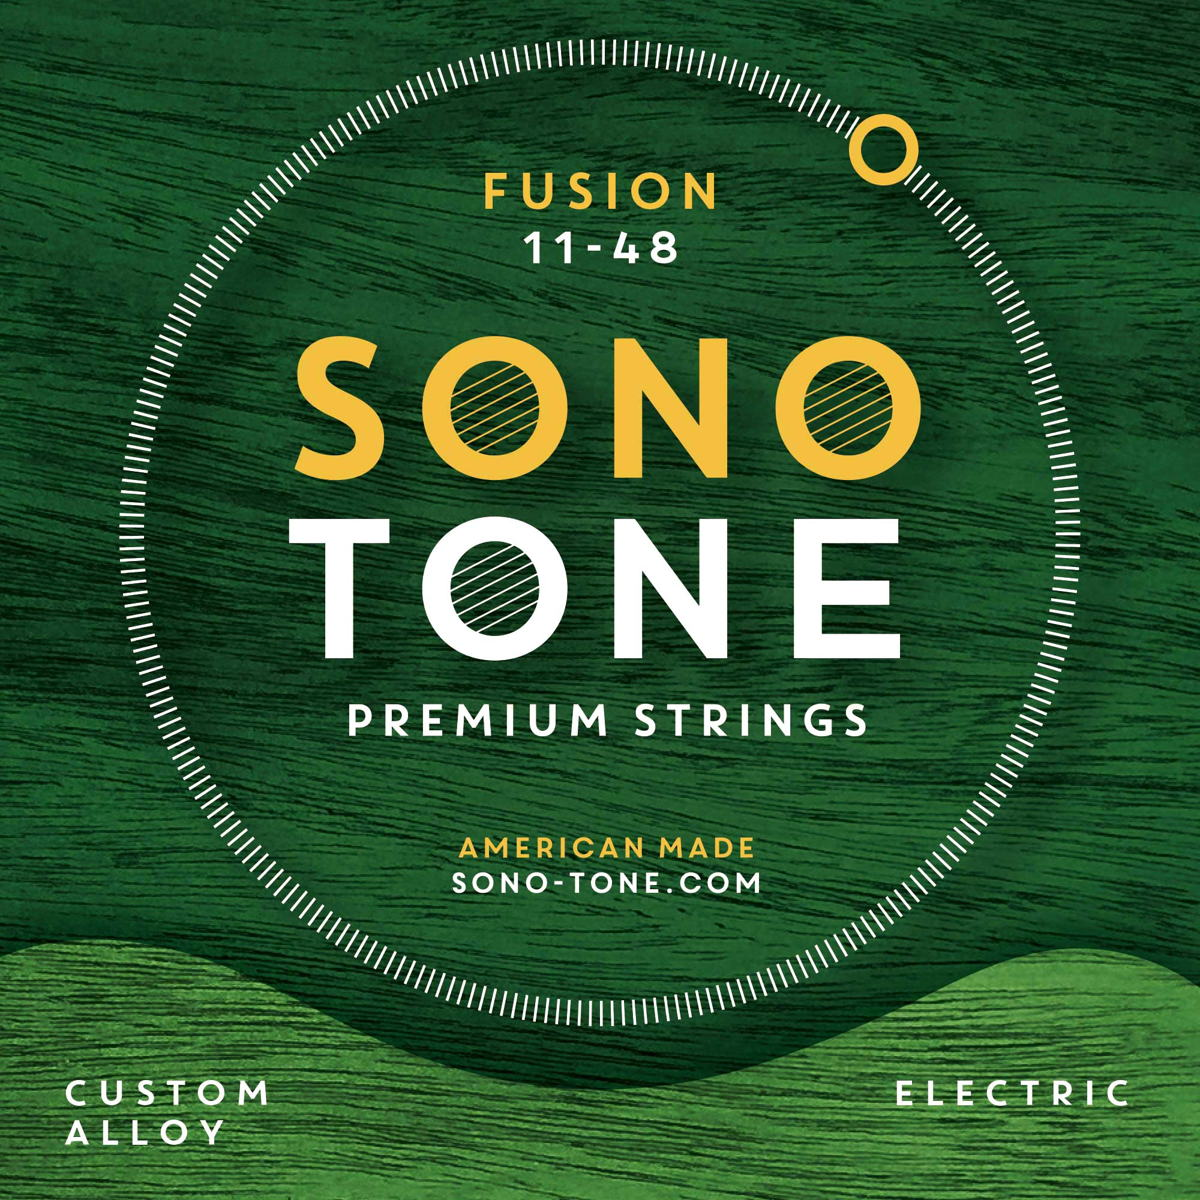 SonoTone Fusion series electric guitar strings are manufactured in the U.S. with high-quality, domestically sourced materials, to enhance tonal clarity, attack and sustain